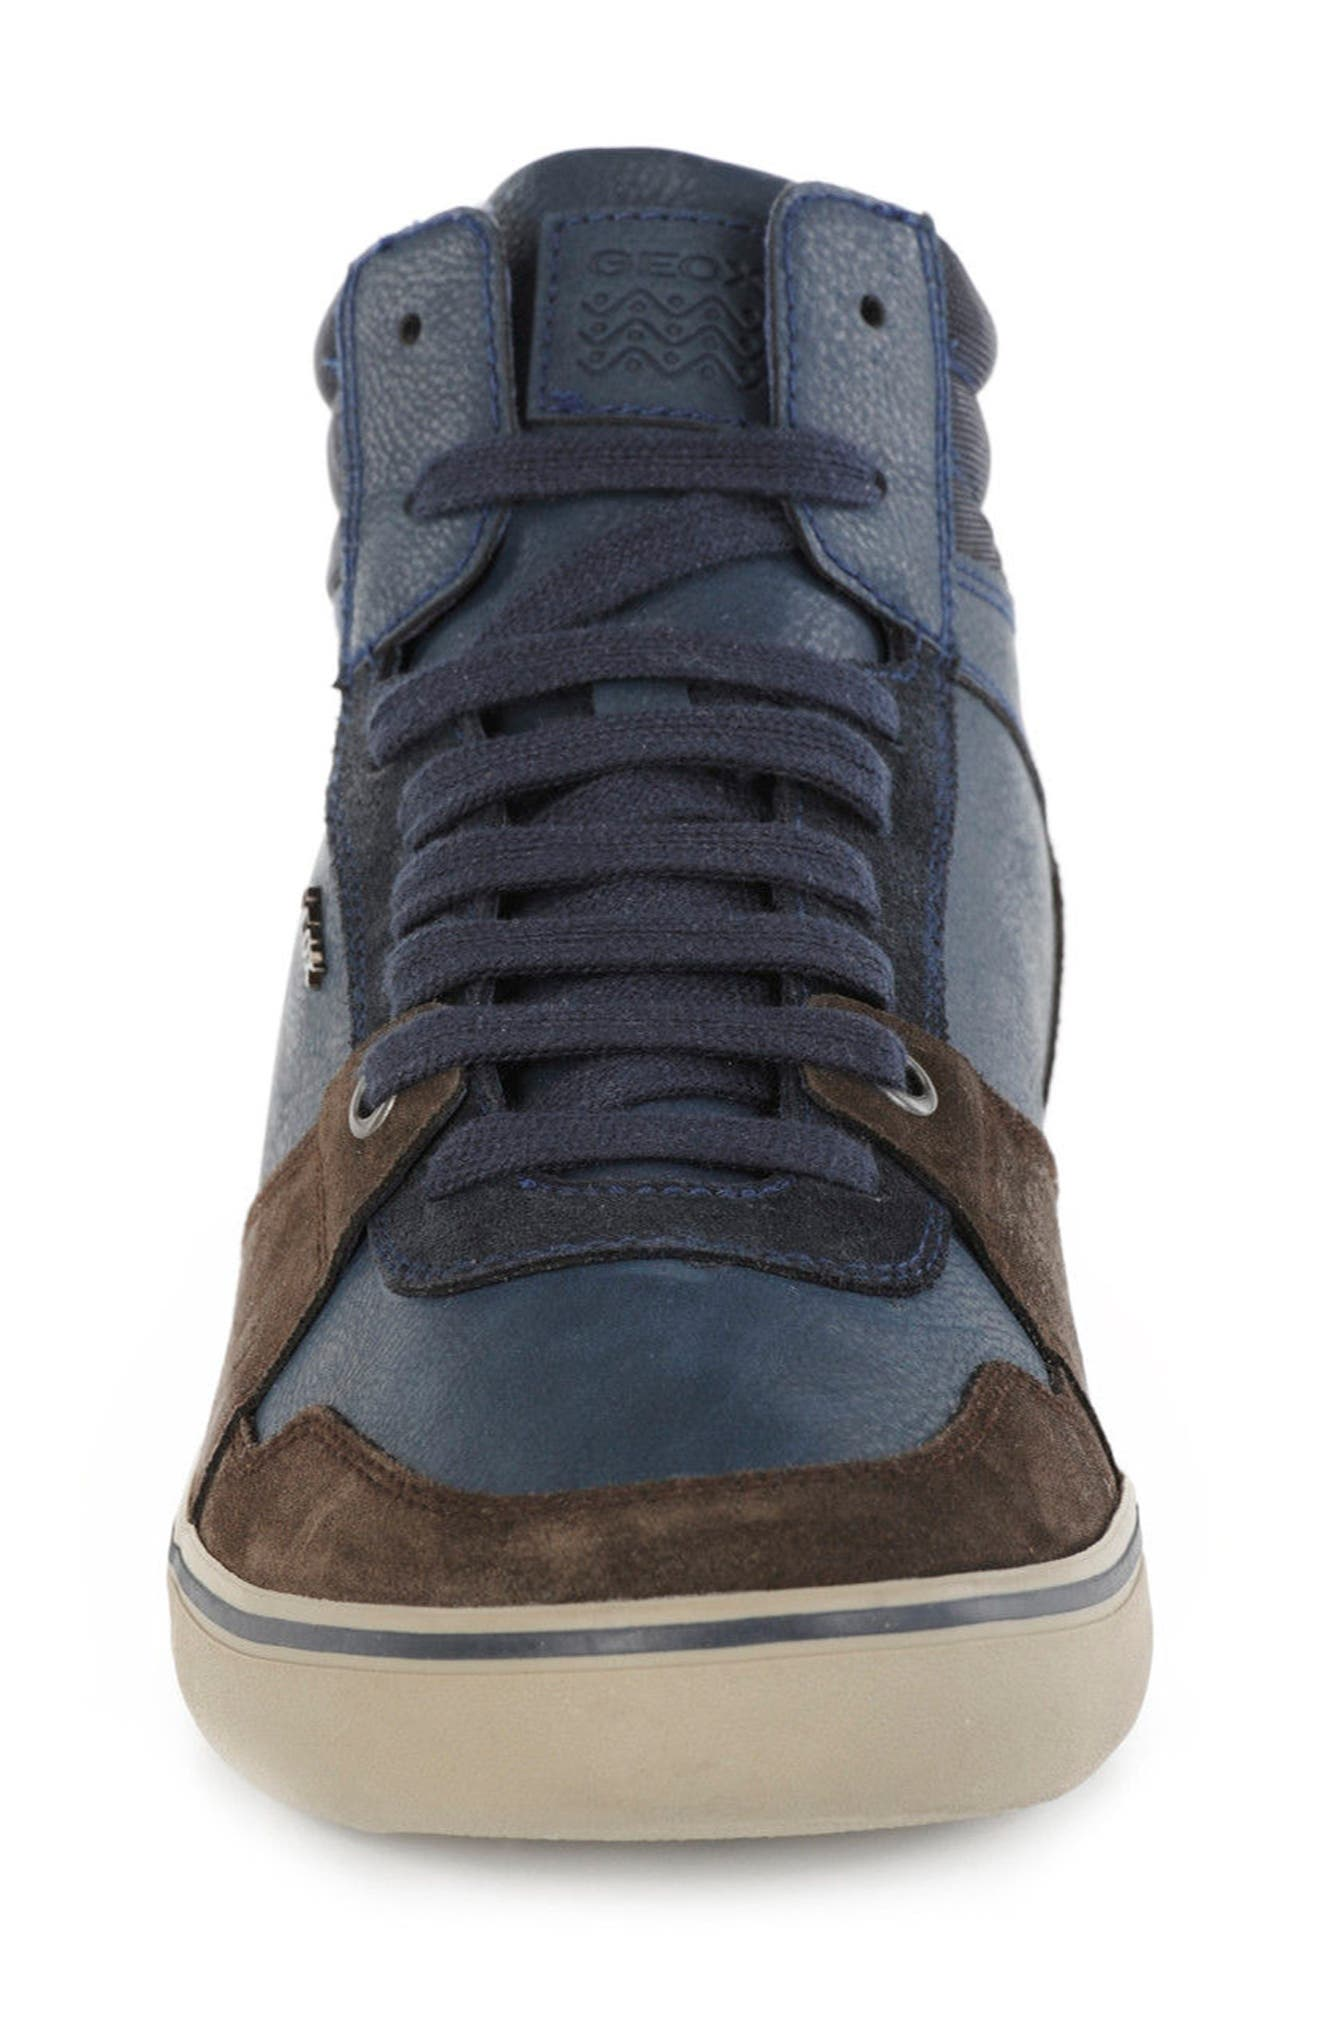 Box 29 High Top Sneaker,                             Alternate thumbnail 4, color,                             Dark Coffee/ Navy